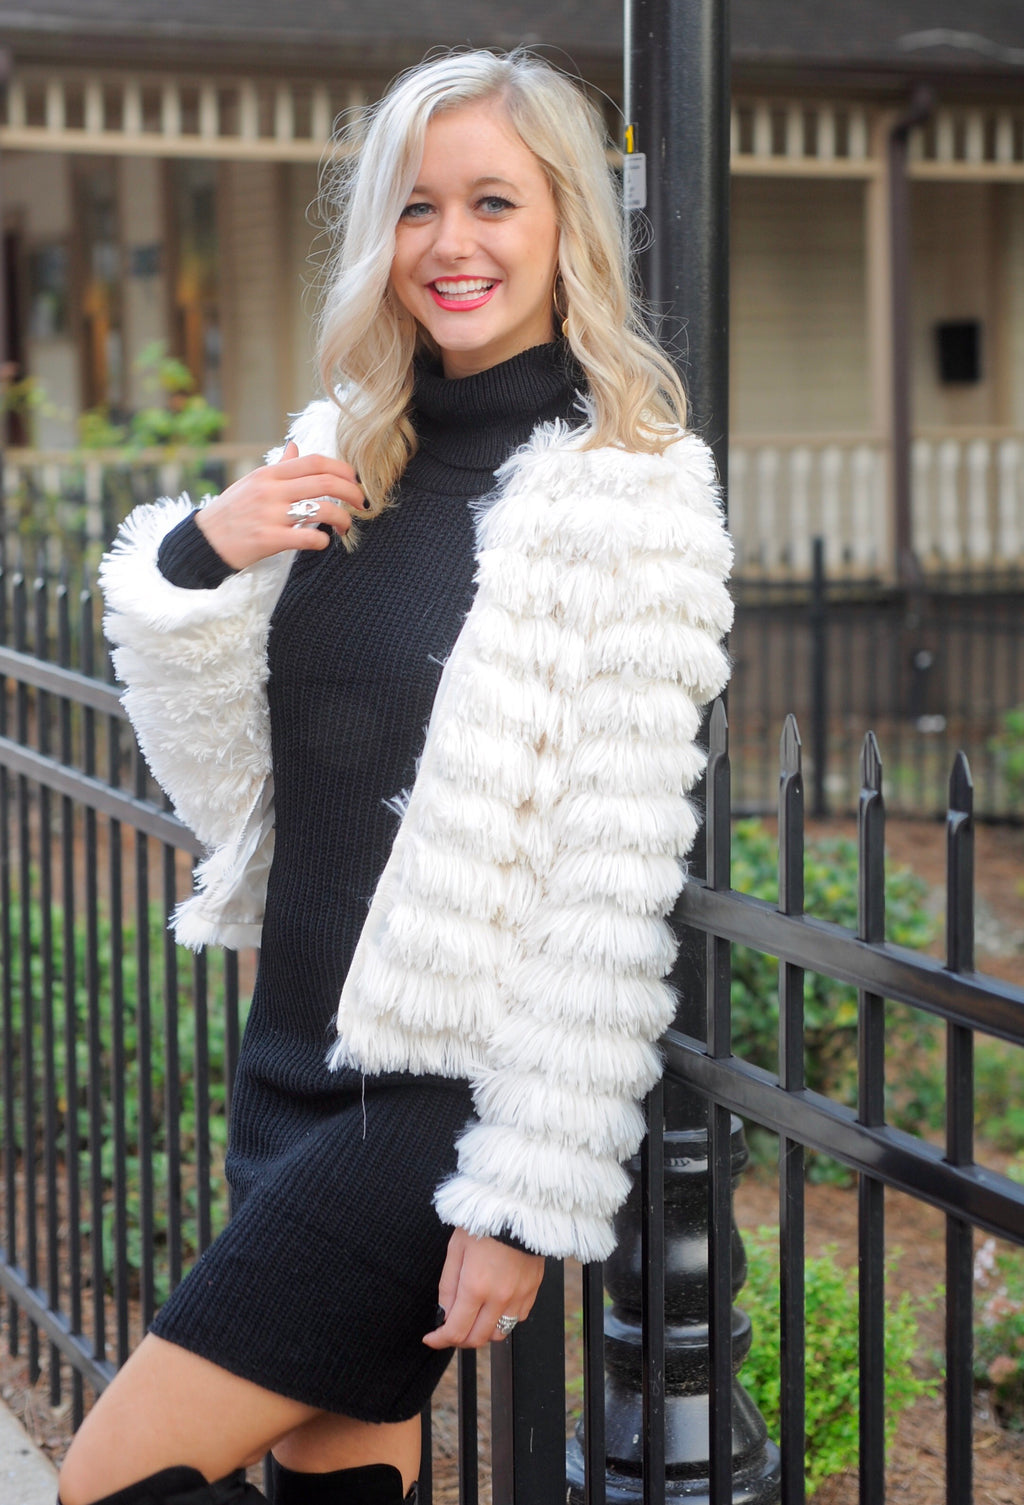 Angelina Furry Jacket, Ivory Faux Fur Coat, Trendy Women's Jacket